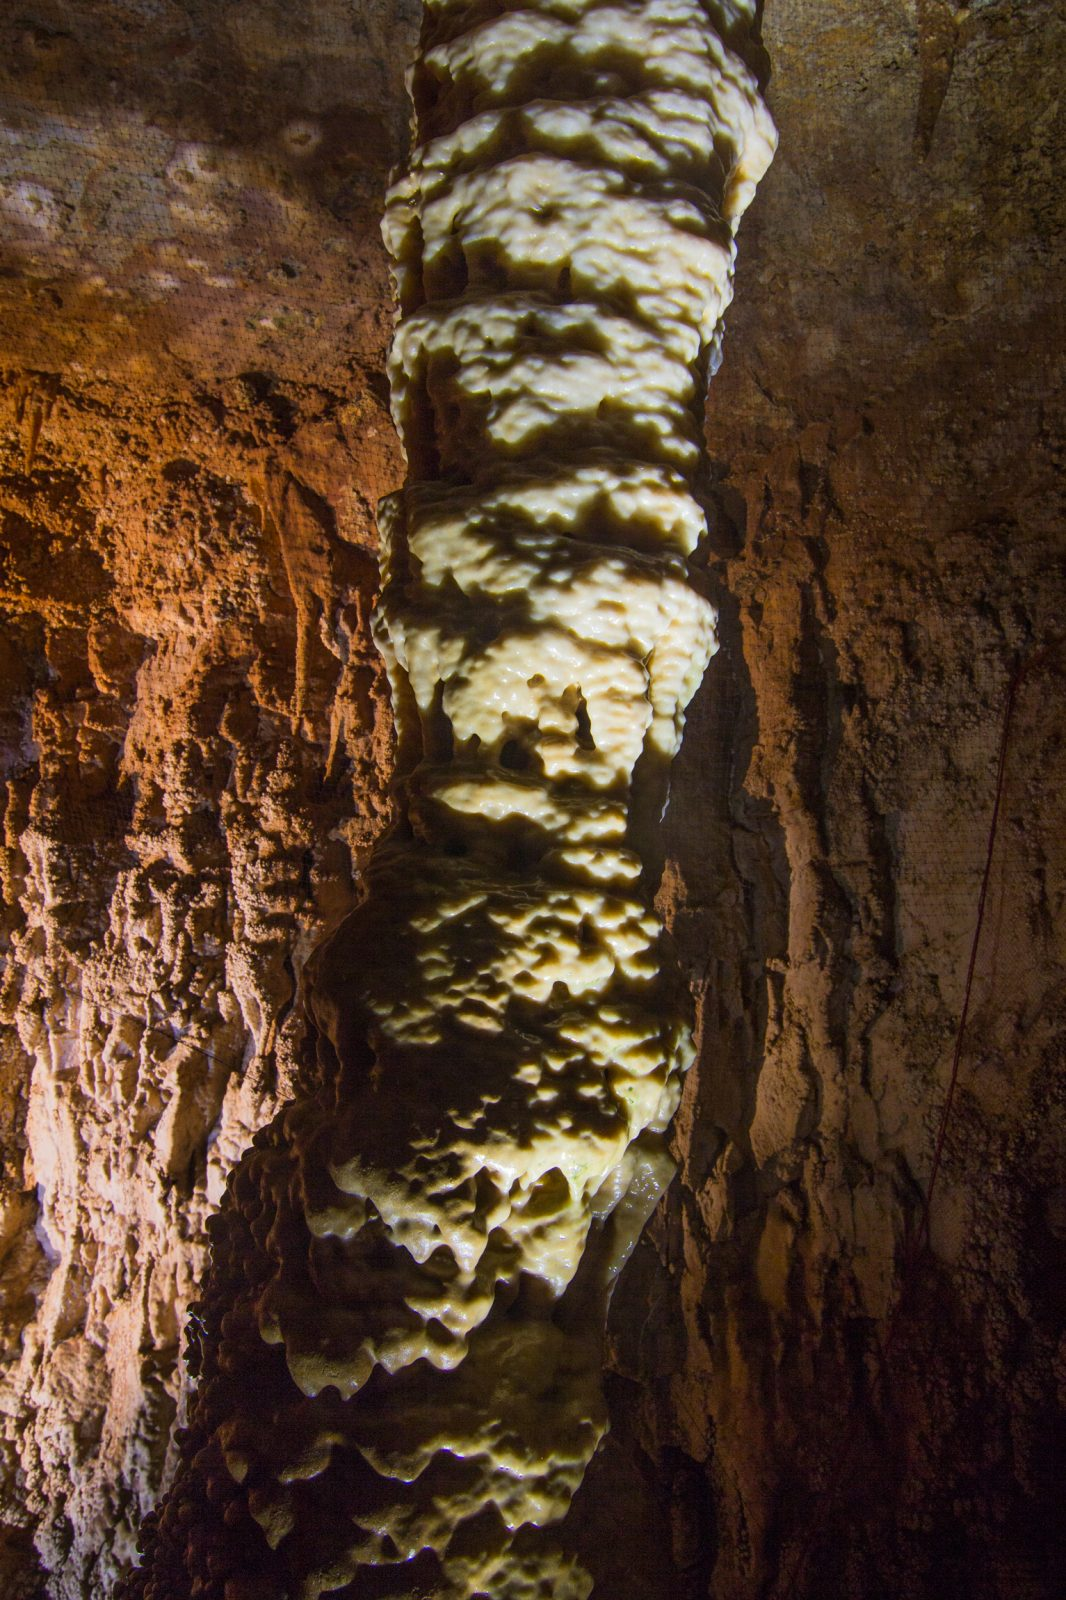 UNDERGROUND LAKE AT A DEPTH OF 60 METERS IN CAVE BAREDINE